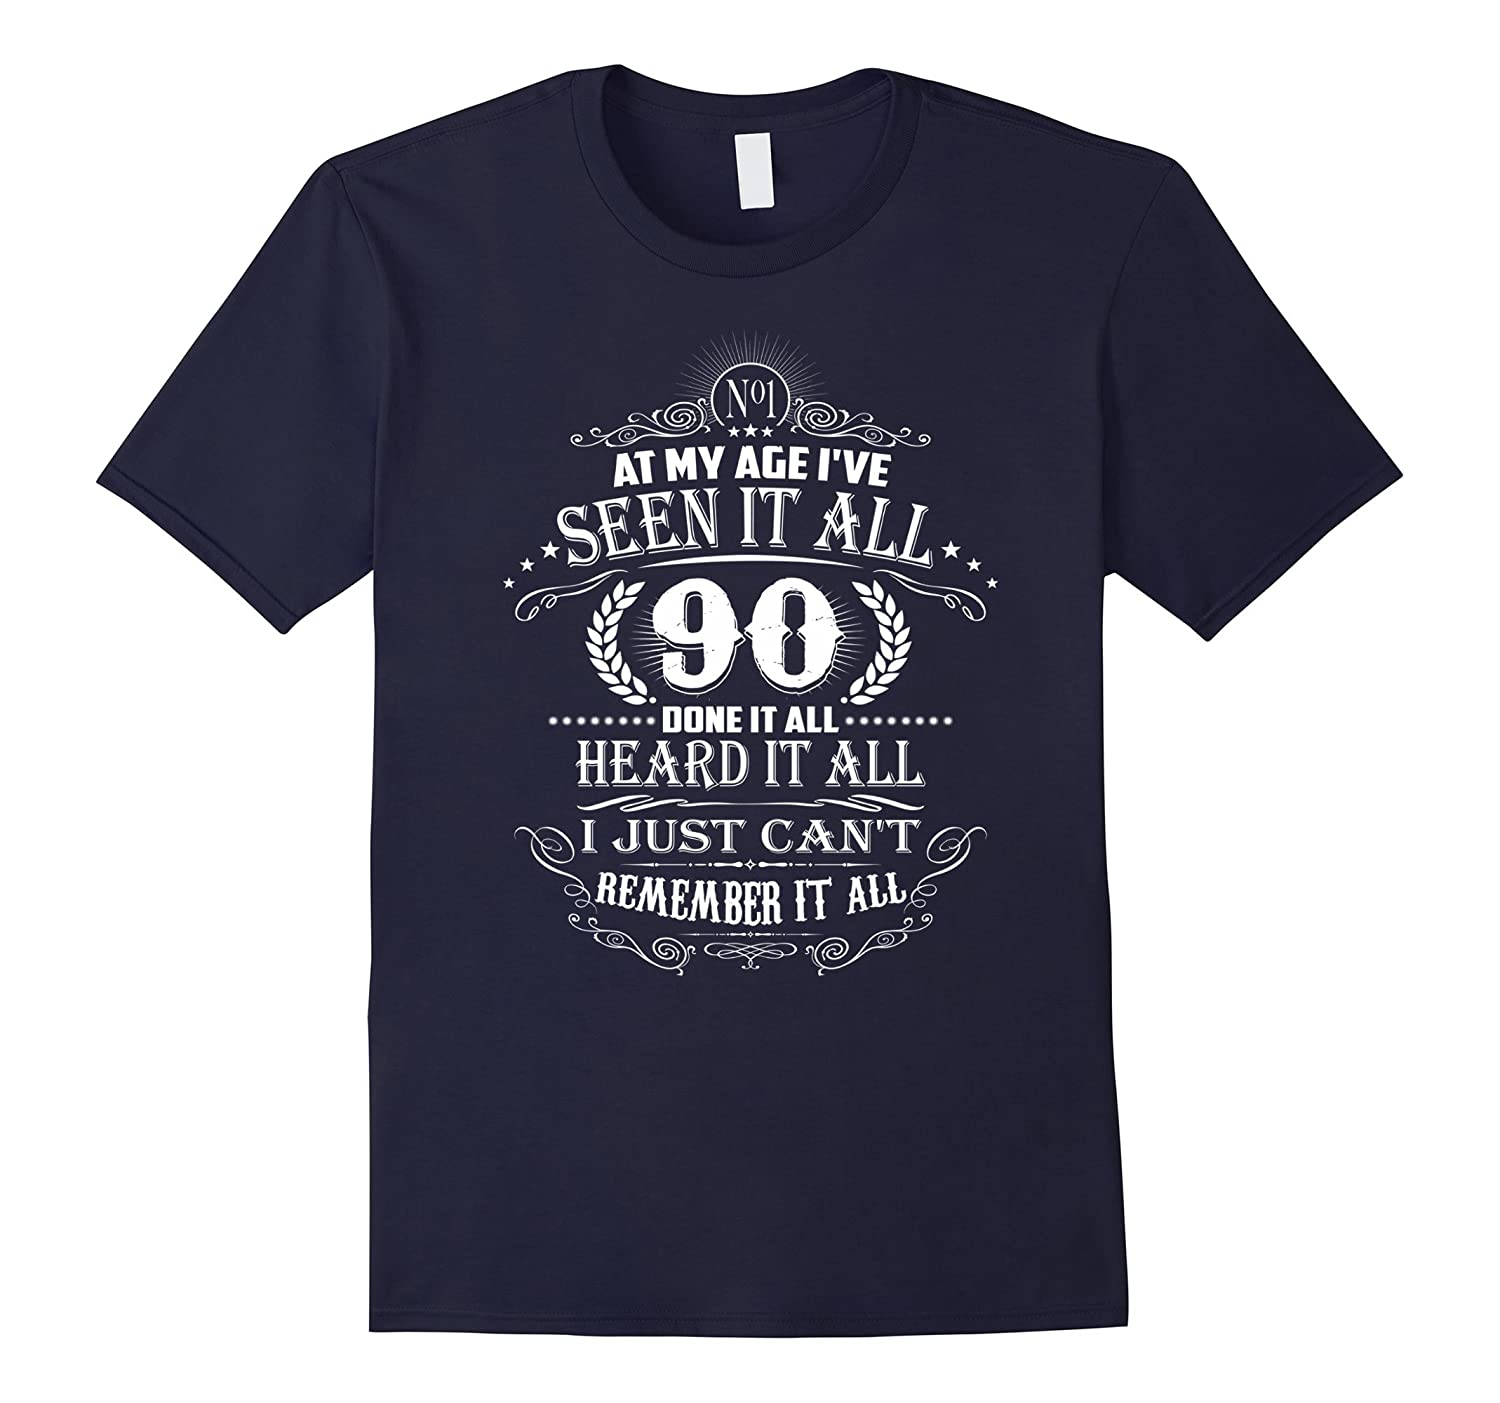 At My Age I've Seen It All - 90 Years Old Birthday T-Shirt-TH